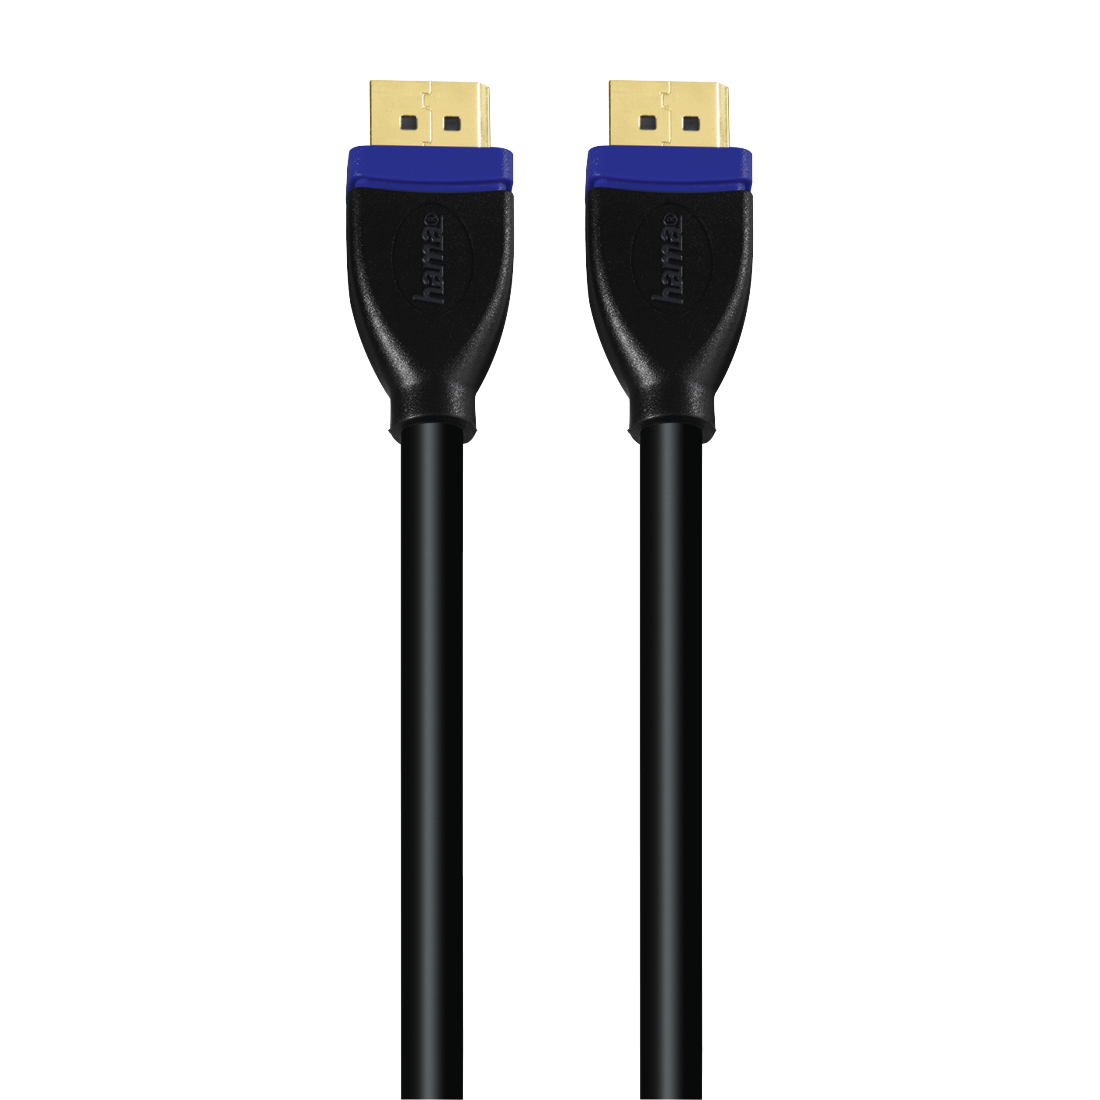 abx2 High-Res Image 2 - Hama, DisplayPort Cable, gold-plated, double shielded, 1.80 m